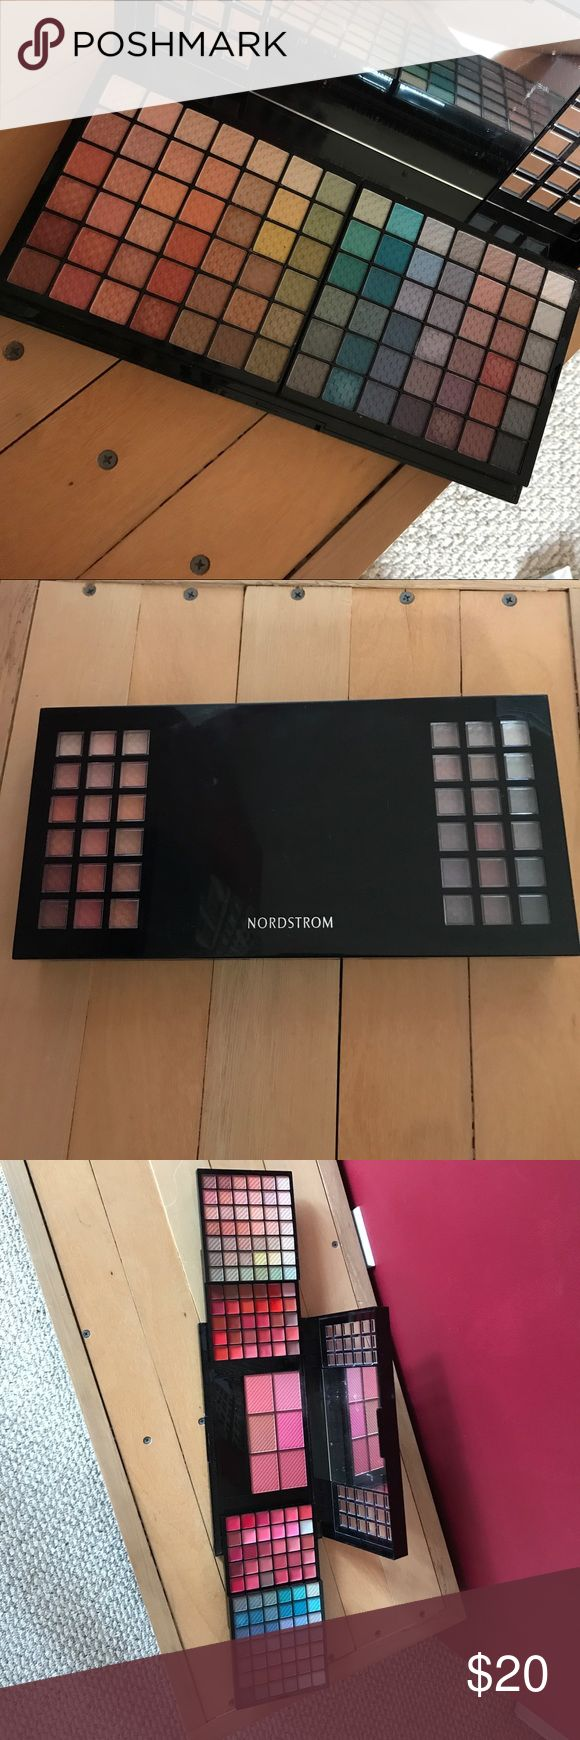 NORDSTROM FULL MAKEUP SET Barely used, just searched a few colors! Nordstrom Makeup Eyeshadow